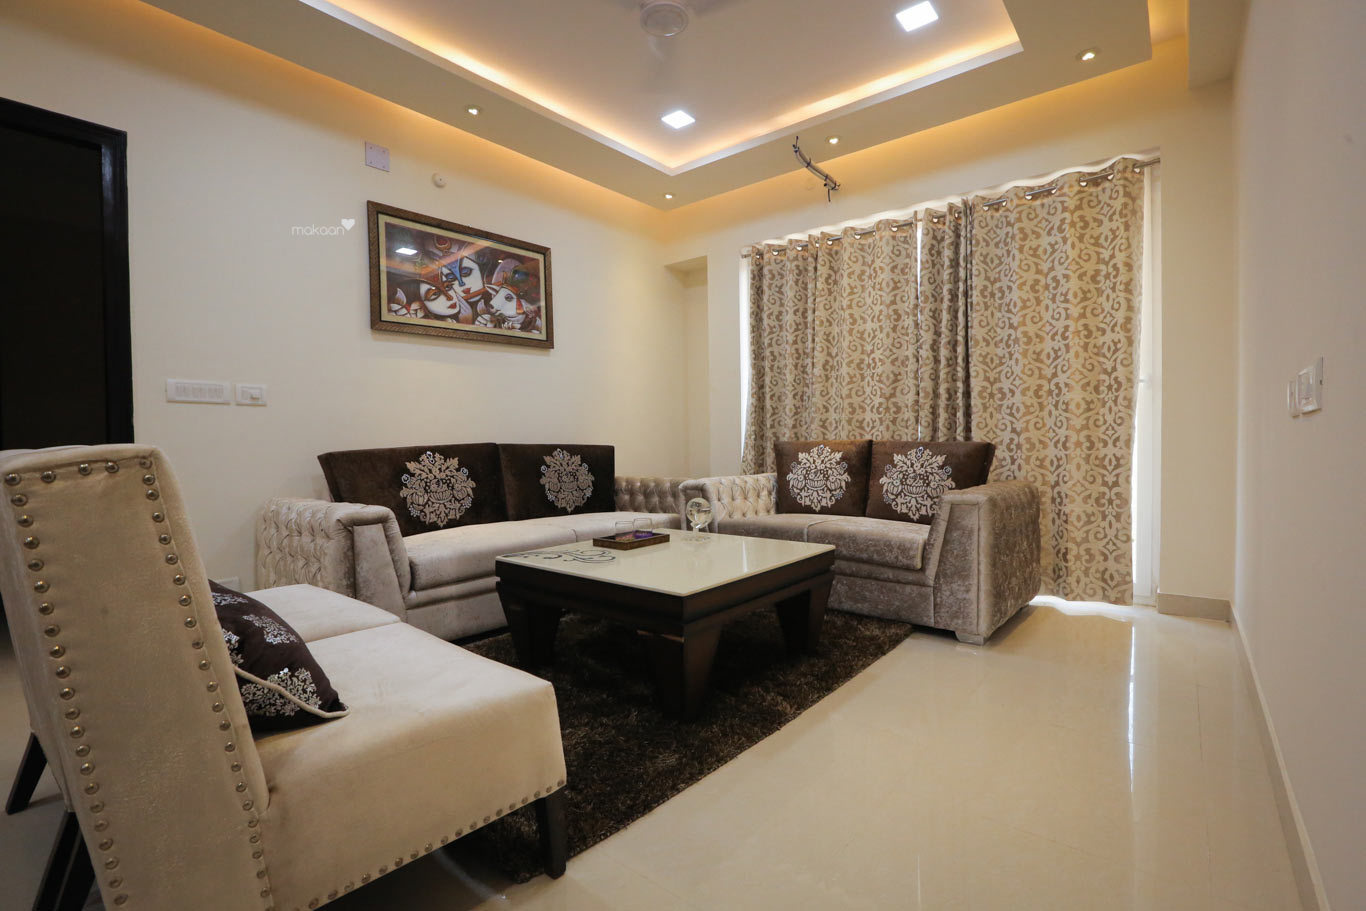 1600 sq ft 4BHK 4BHK+4T (1,600 sq ft) Property By Property Space In Project, Sector 10 Dwarka